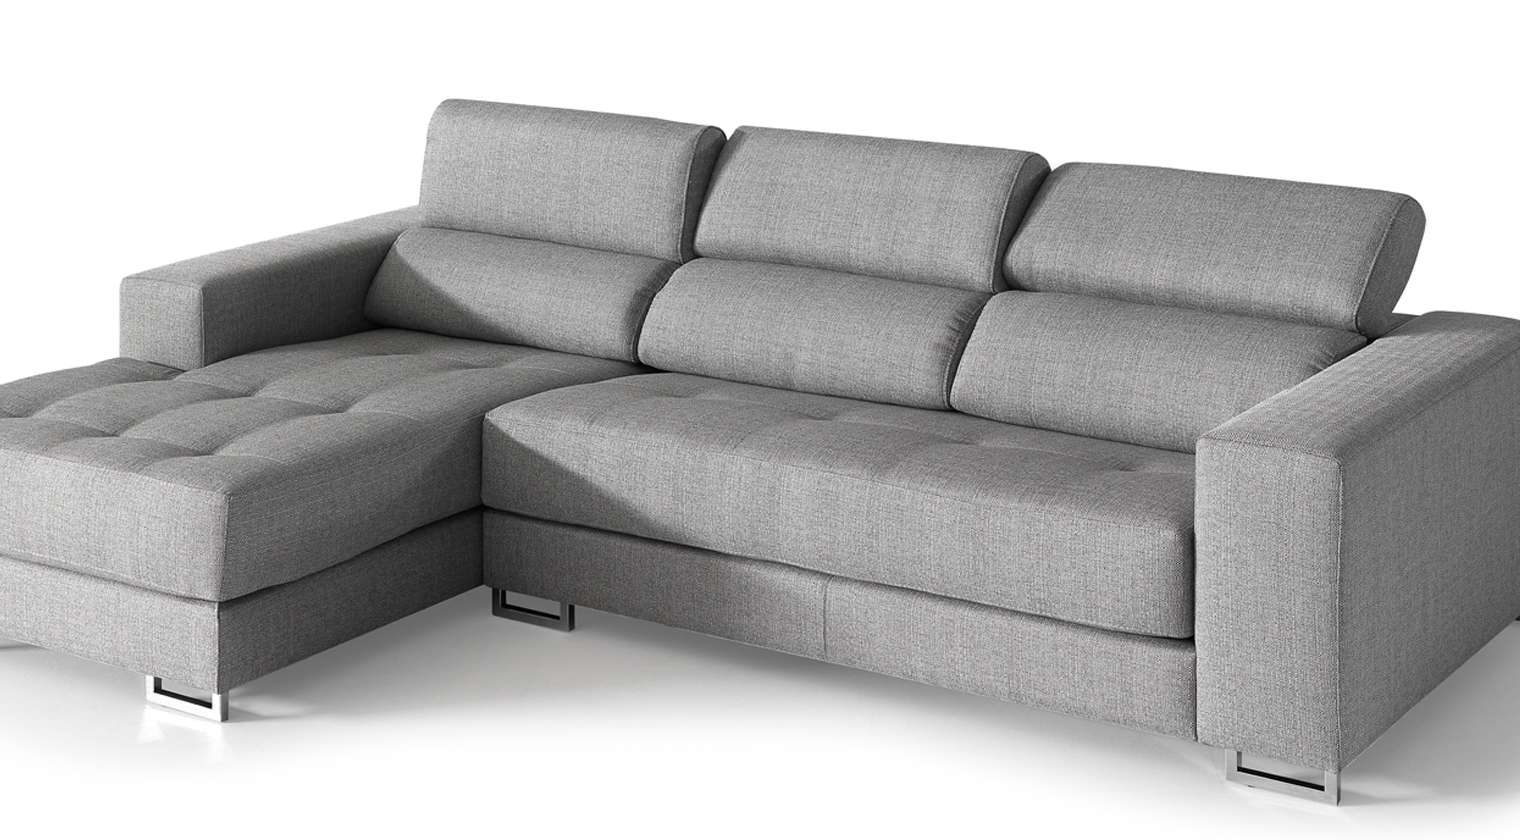 Sofas Chaise Longue 5 Plazas D0dg sofa 5 Plazas Chaise Longue 7066